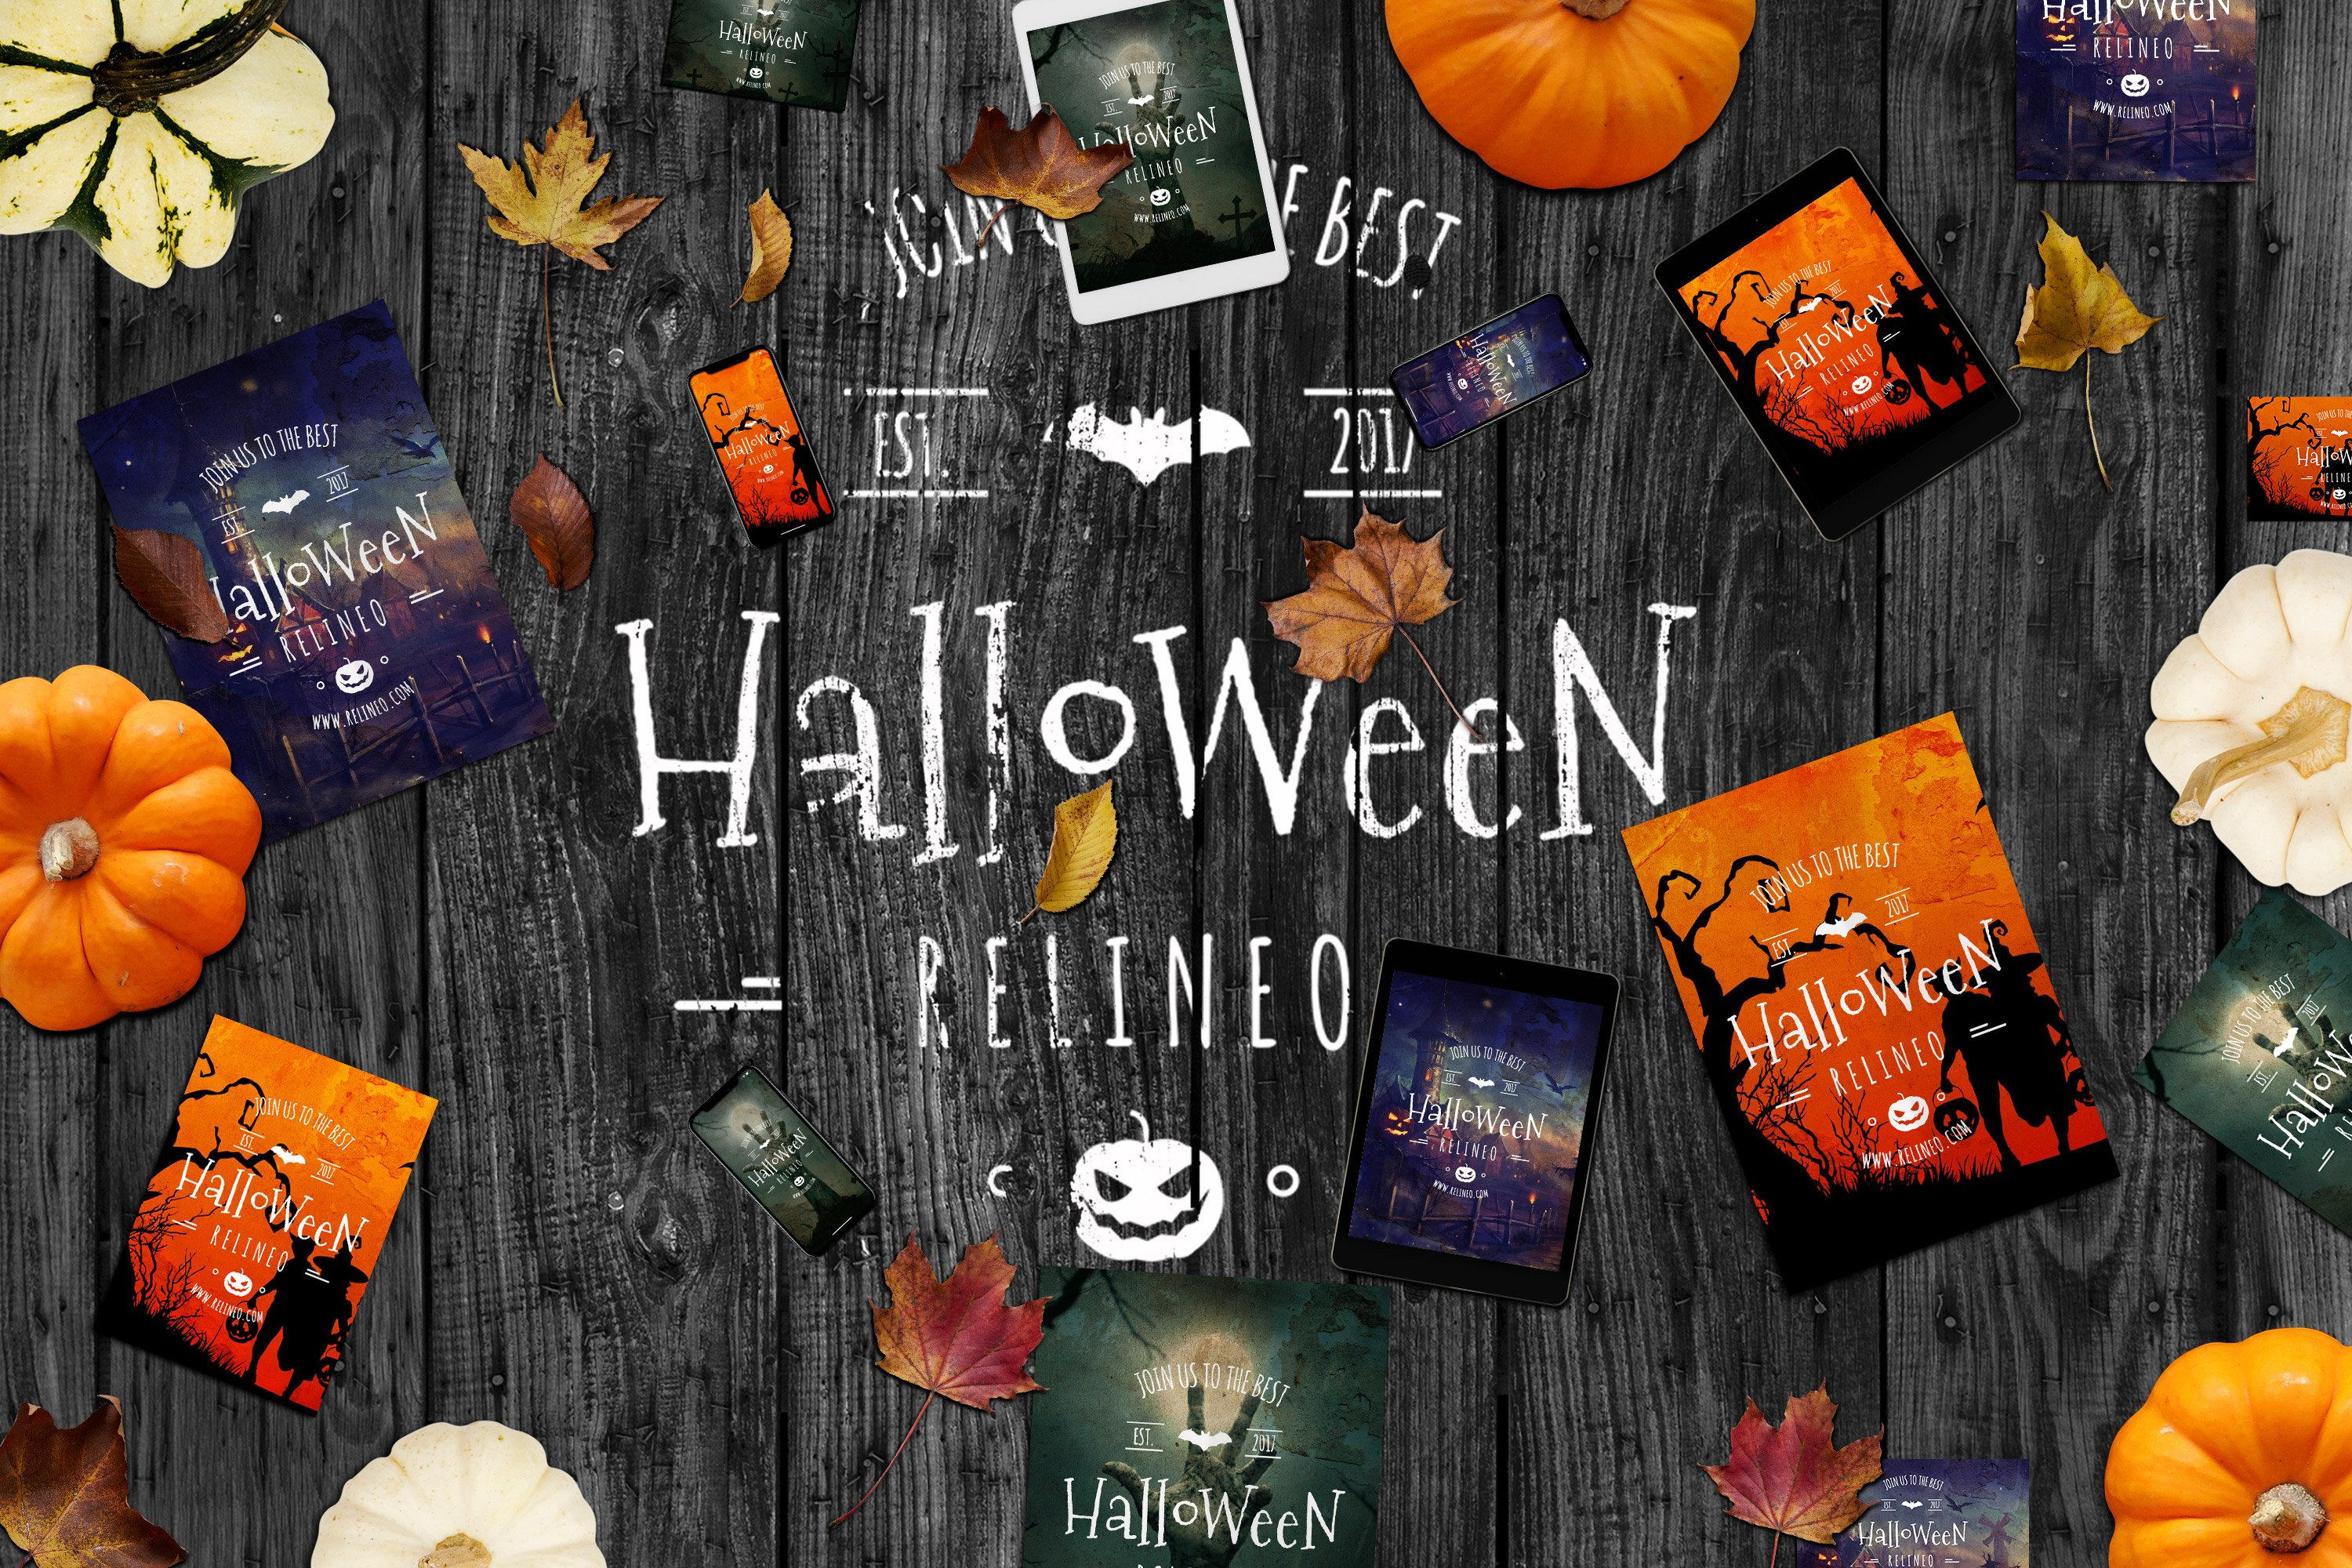 Halloween Graphics and Mockups - $10 - 1162 preview